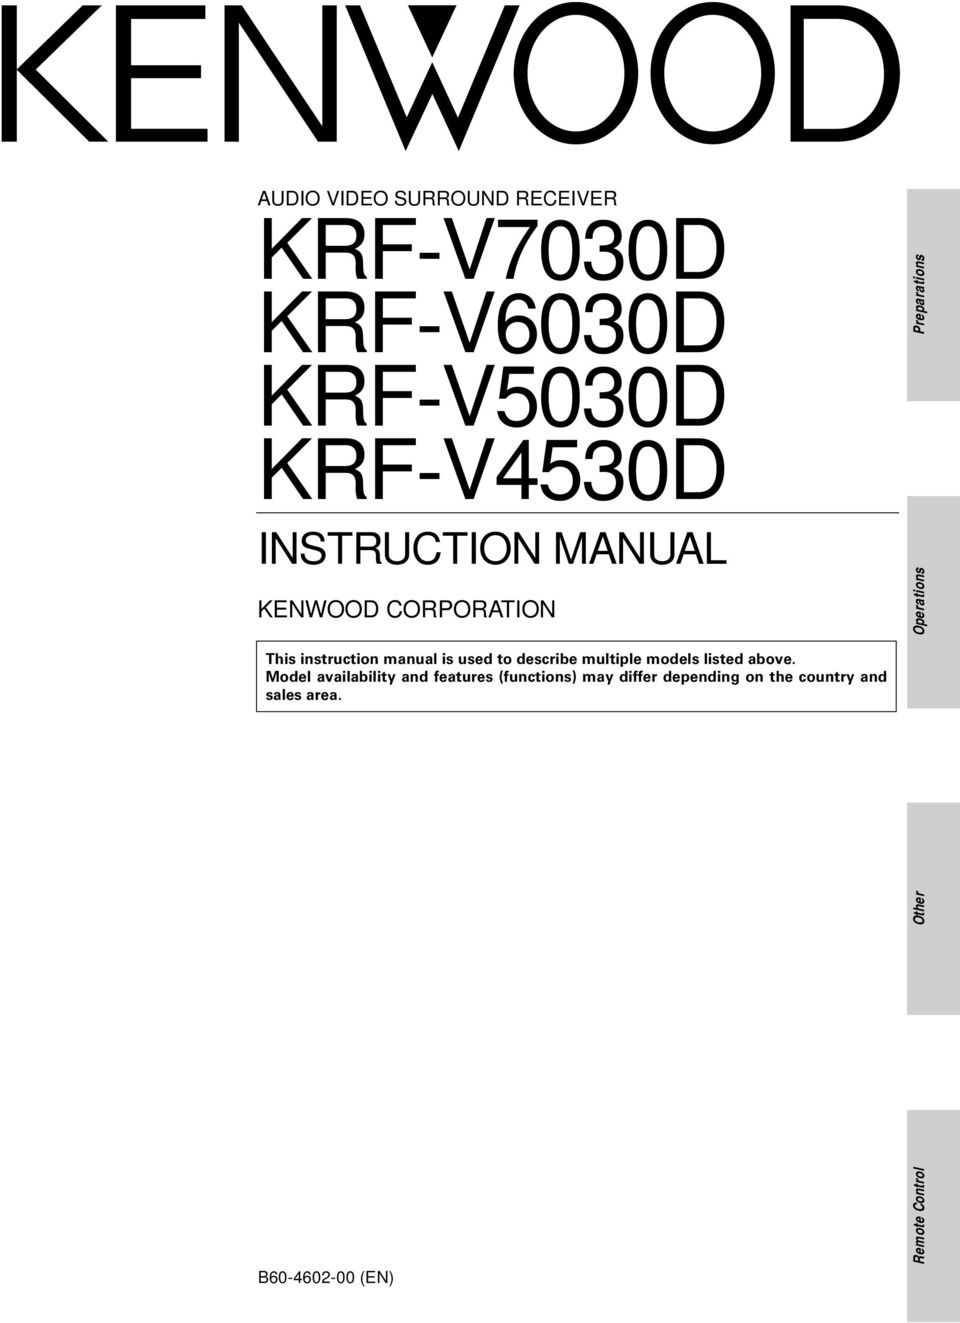 KENWOOD CORPORATION AUDIO VIDEO SURROUND RECEIVER KRF